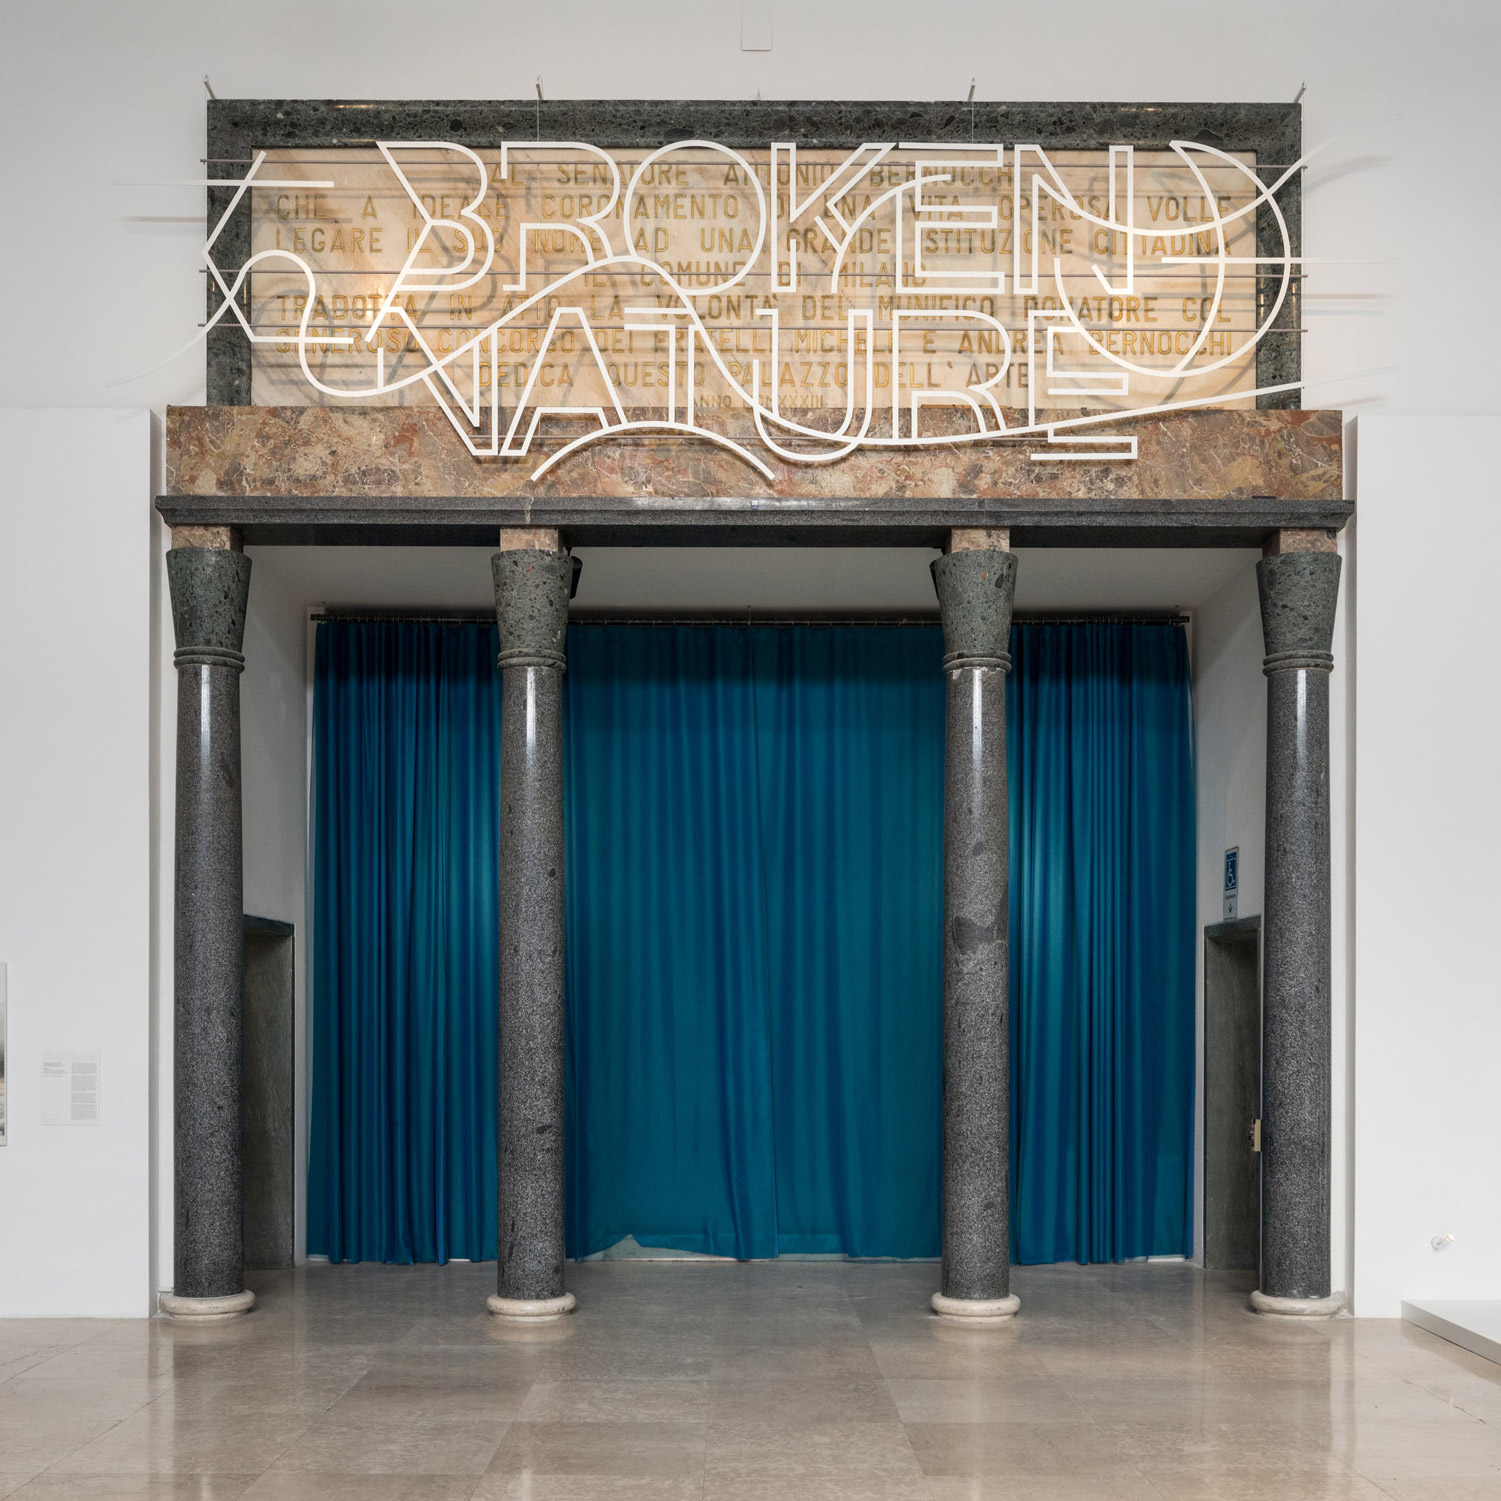 Milan design week guide: Broken Nature Design Takes on Human Survival